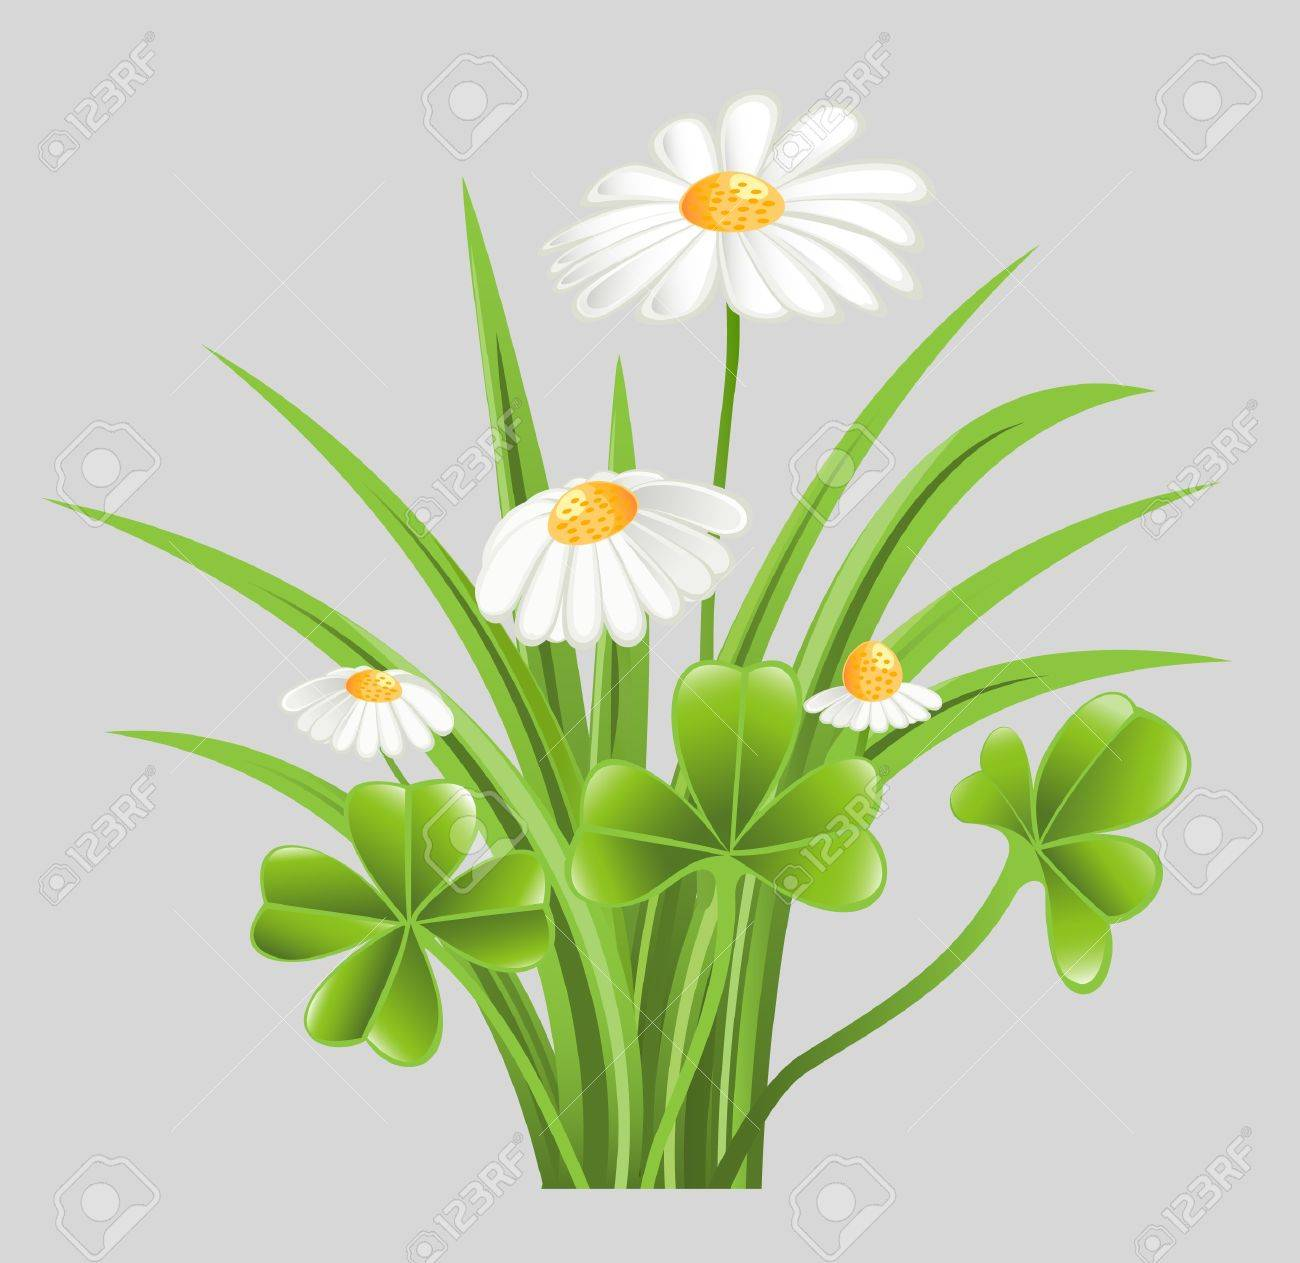 Green grass with clover and camomile flowers Stock Vector - 13216179